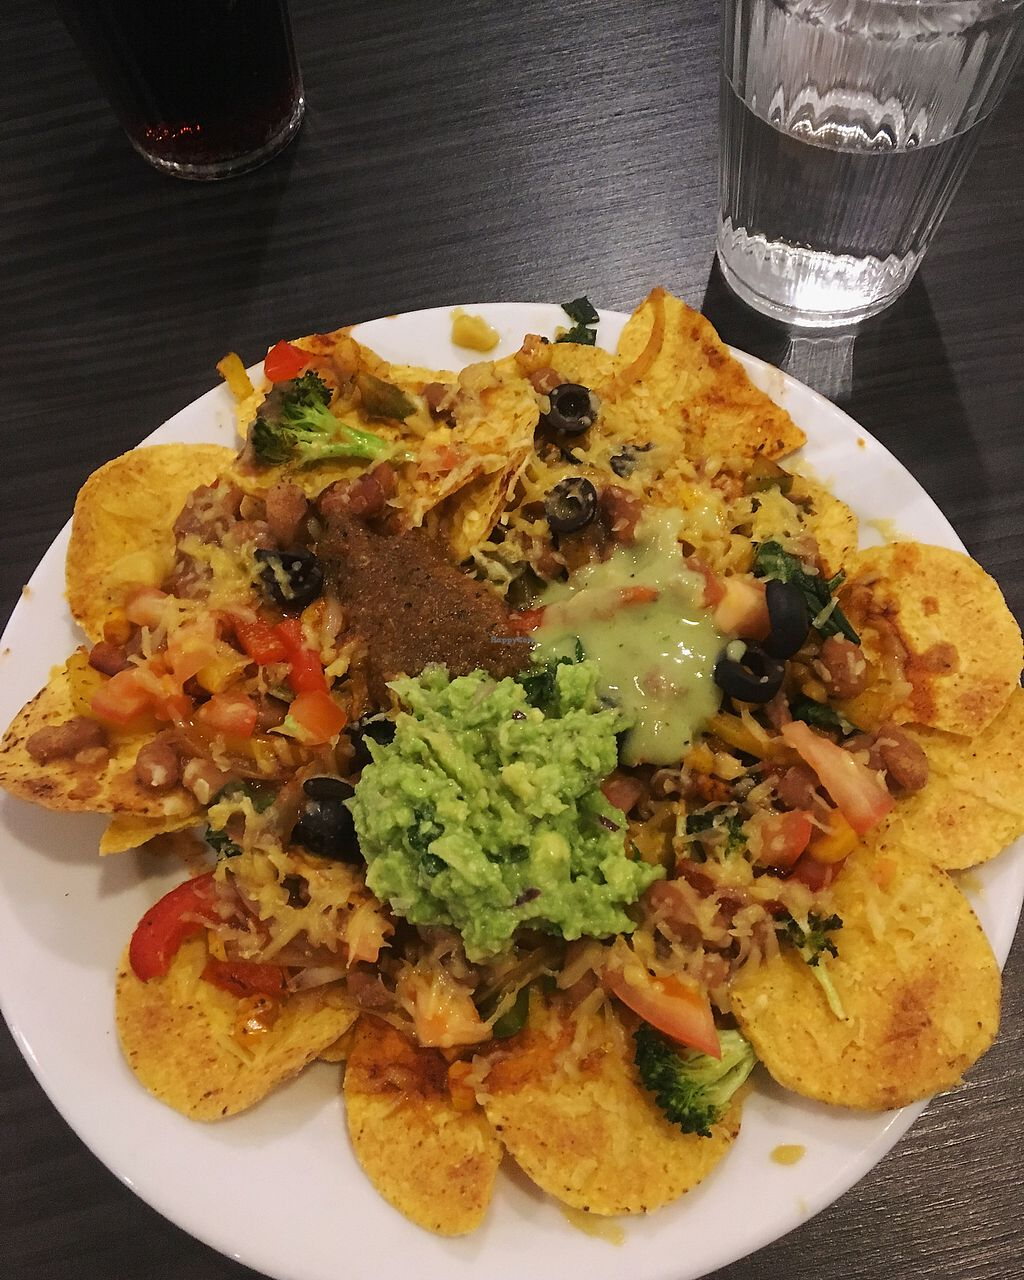 "Photo of Dos Amigos  by <a href=""/members/profile/CamillaWennberg"">CamillaWennberg</a> <br/>Vegetarian nacho. With vegan cheese!  <br/> November 20, 2017  - <a href='/contact/abuse/image/90094/327476'>Report</a>"